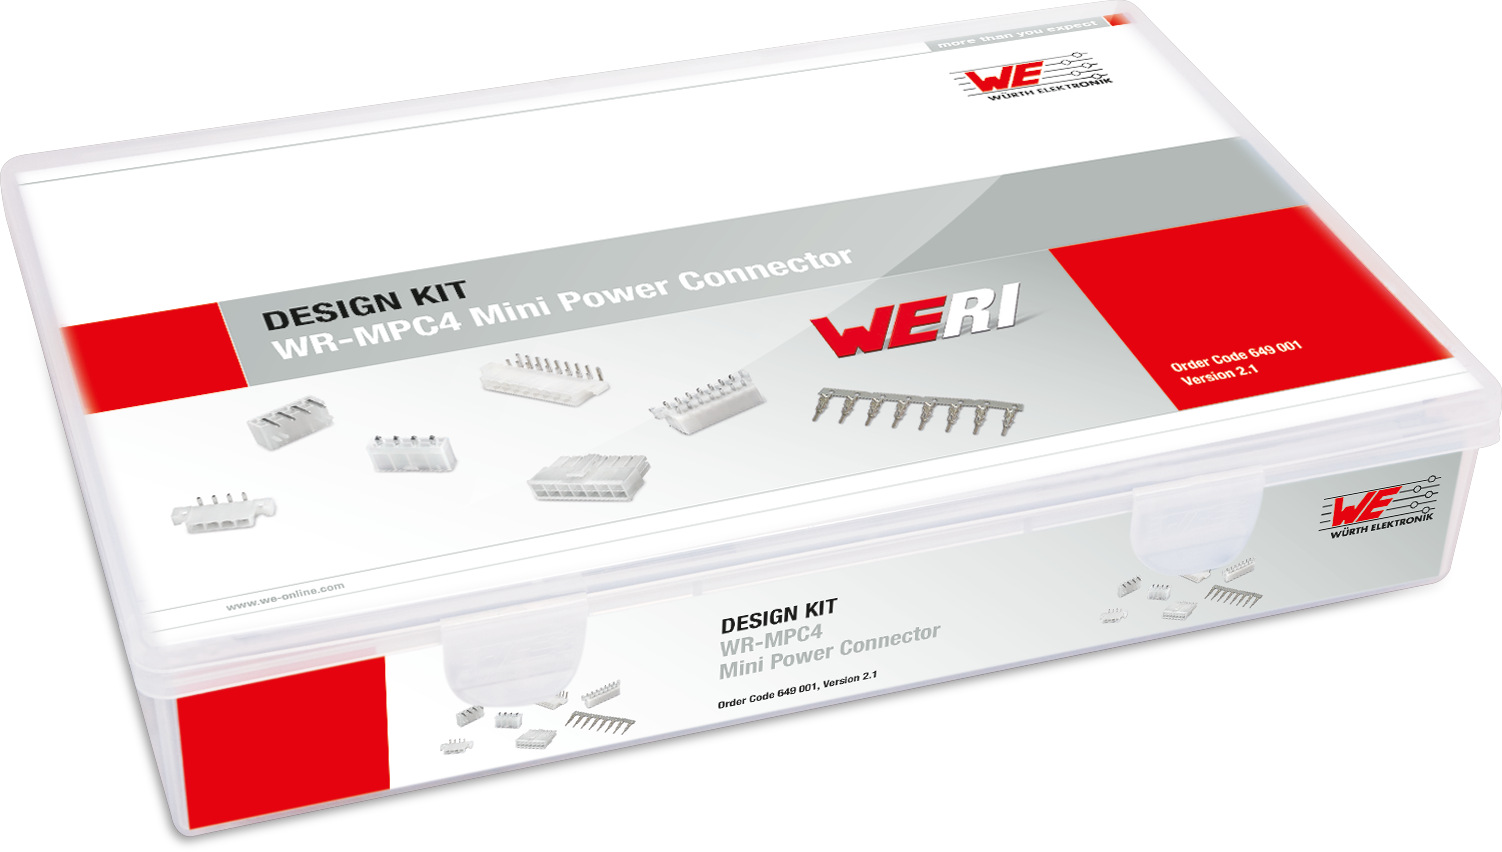 Design Kit WR-MPC4 Mini Power Connectors Picture